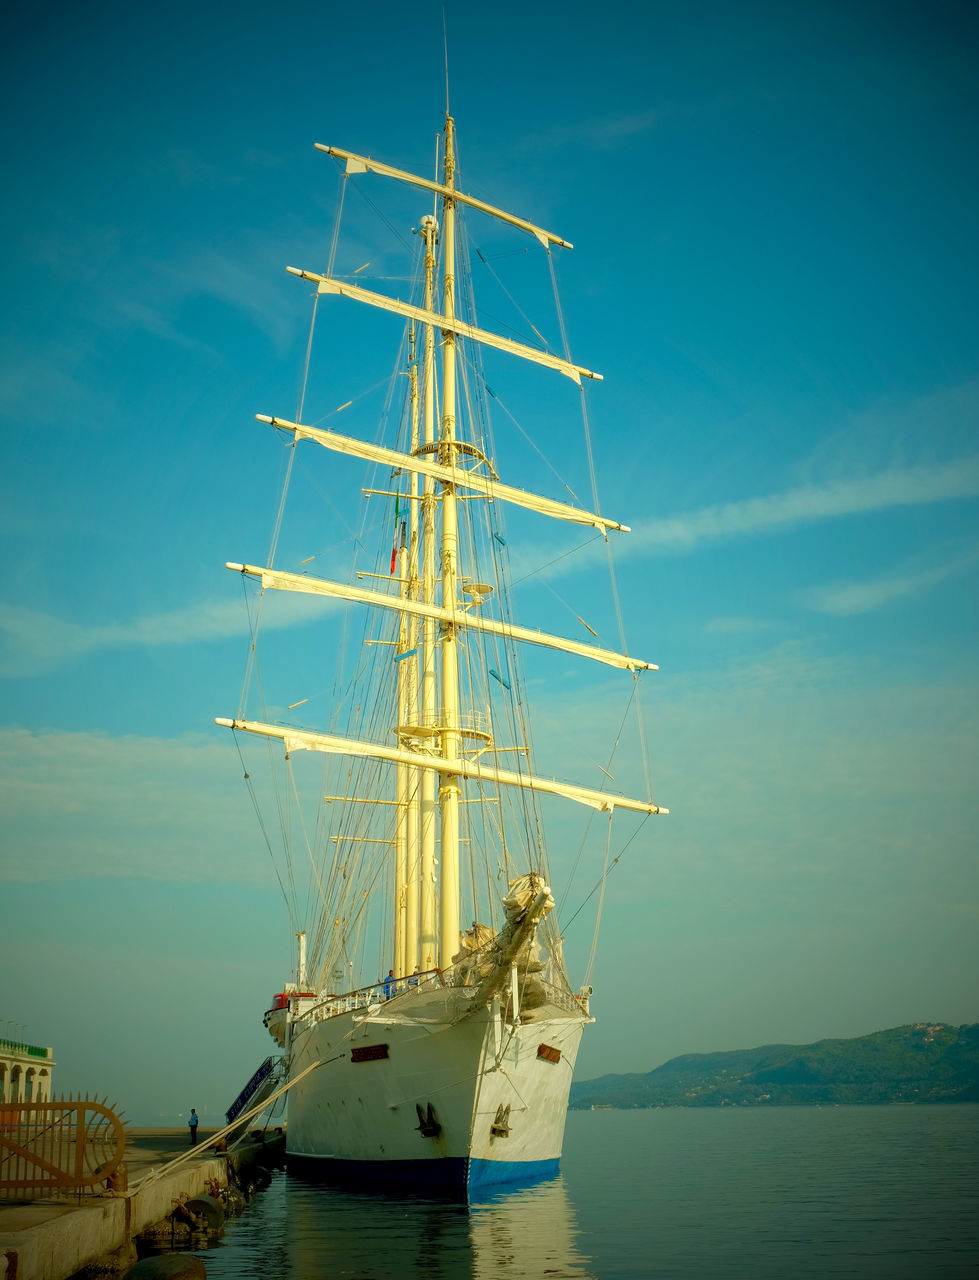 nautical vessel, transportation, mode of transport, water, sky, mast, sea, no people, outdoors, nature, moored, day, tall ship, sailboat, scenics, beauty in nature, sailing ship